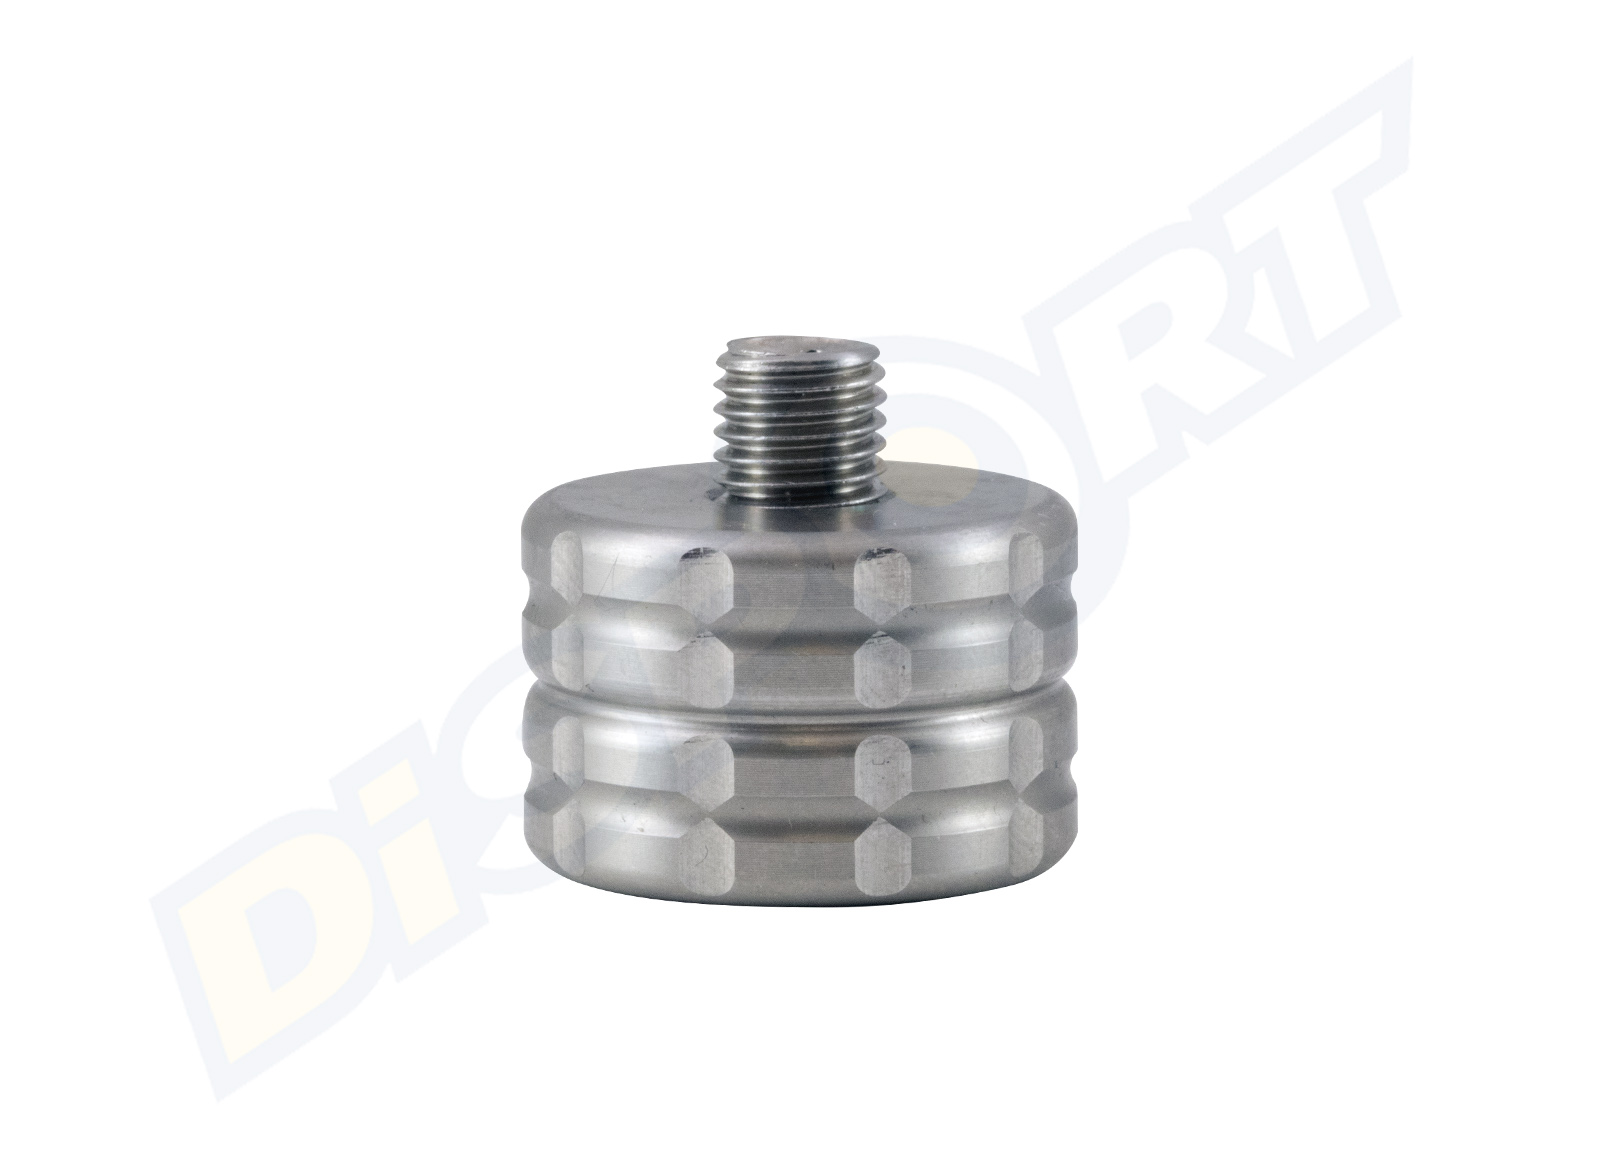 AXCEL PESI PER STABILIZZATORE 2OZ 1.00'' STAINLESS STEEL